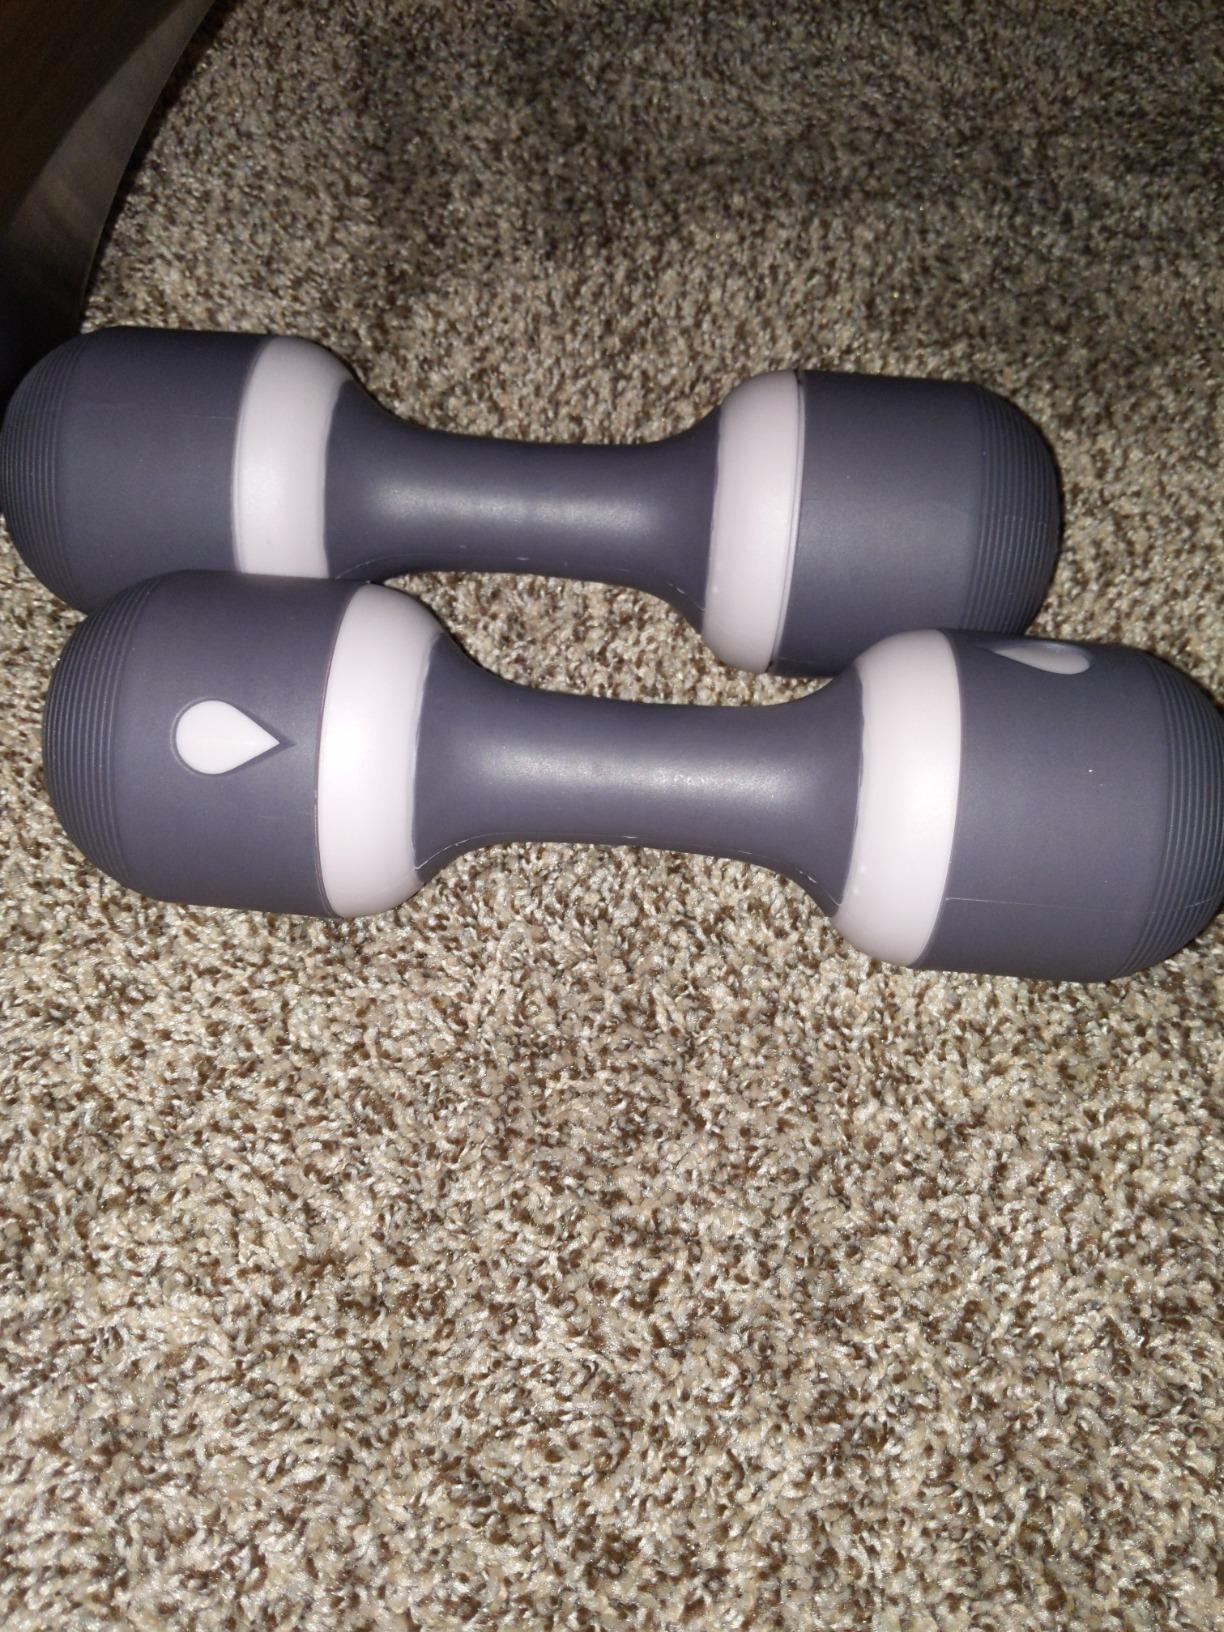 Nice C Adjustable Dumbbell Weight Pair, 5-in-1 Weight Options, Non-Slip Neoprene Hand, All-Purpose, Home, Gym, Office photo review